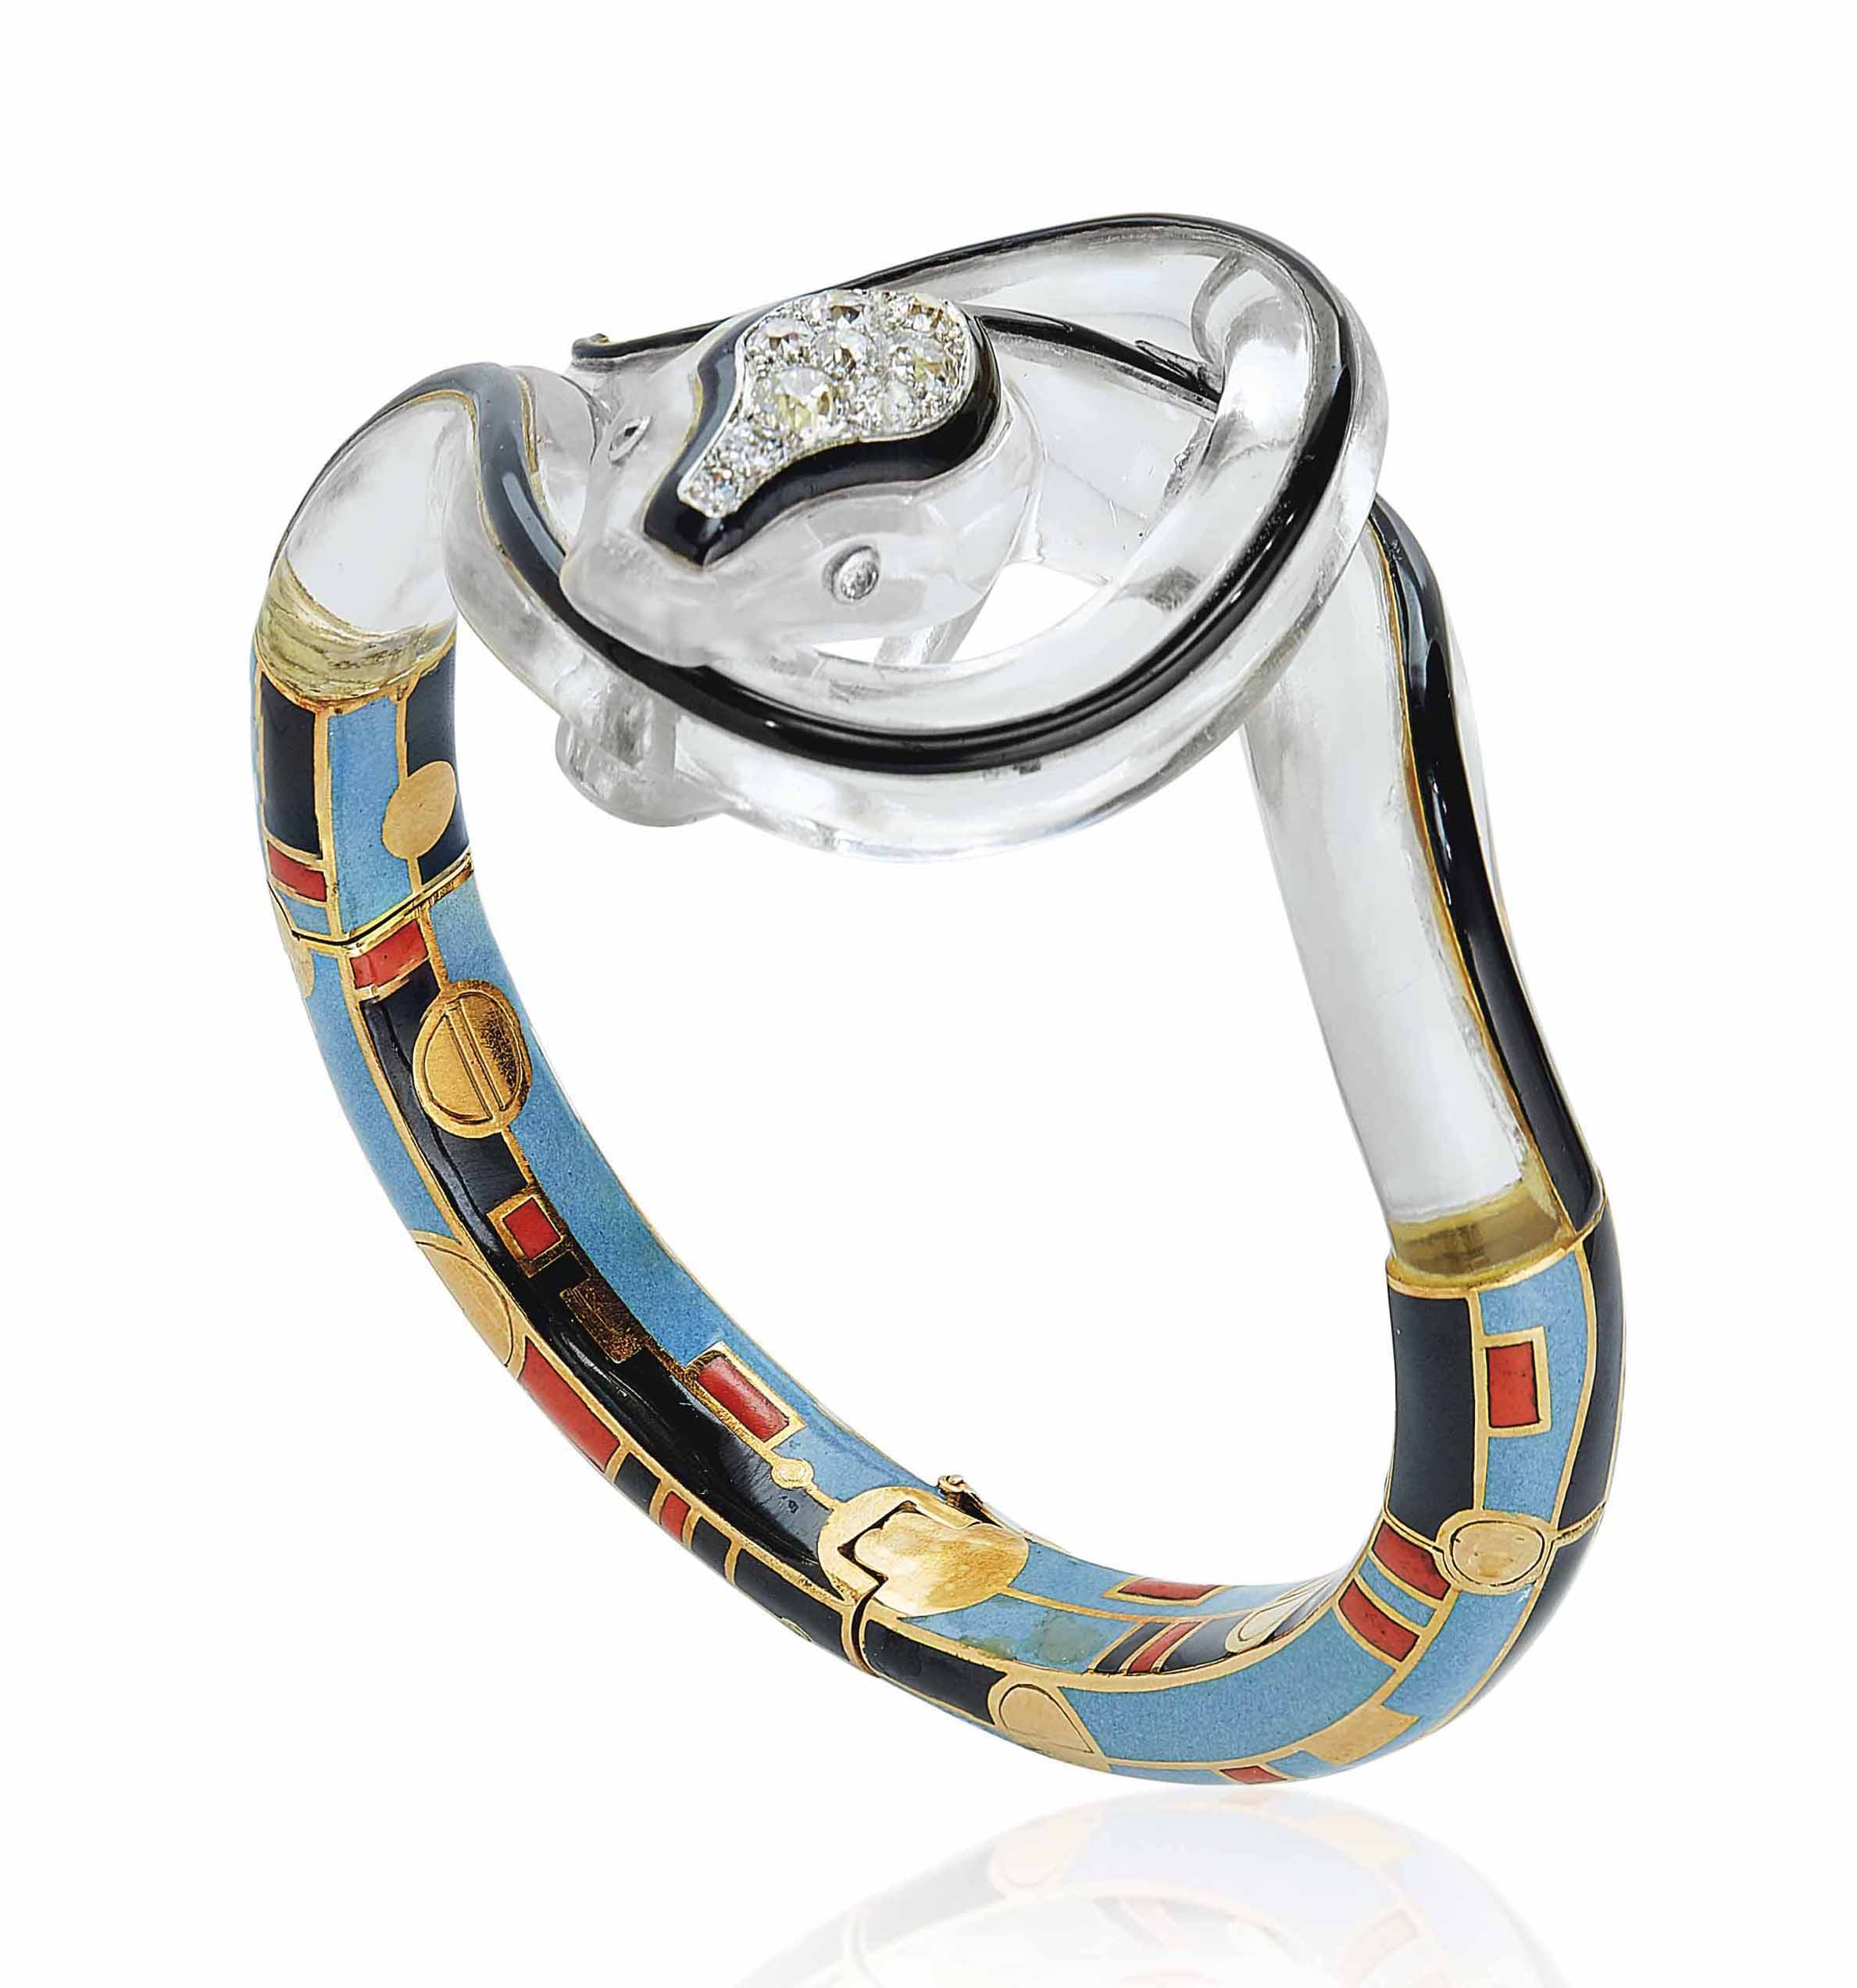 AN ART DÉCO ROCK CRYSTAL, DIAMOND AND ENAMEL BANGLE, BY JANESICH